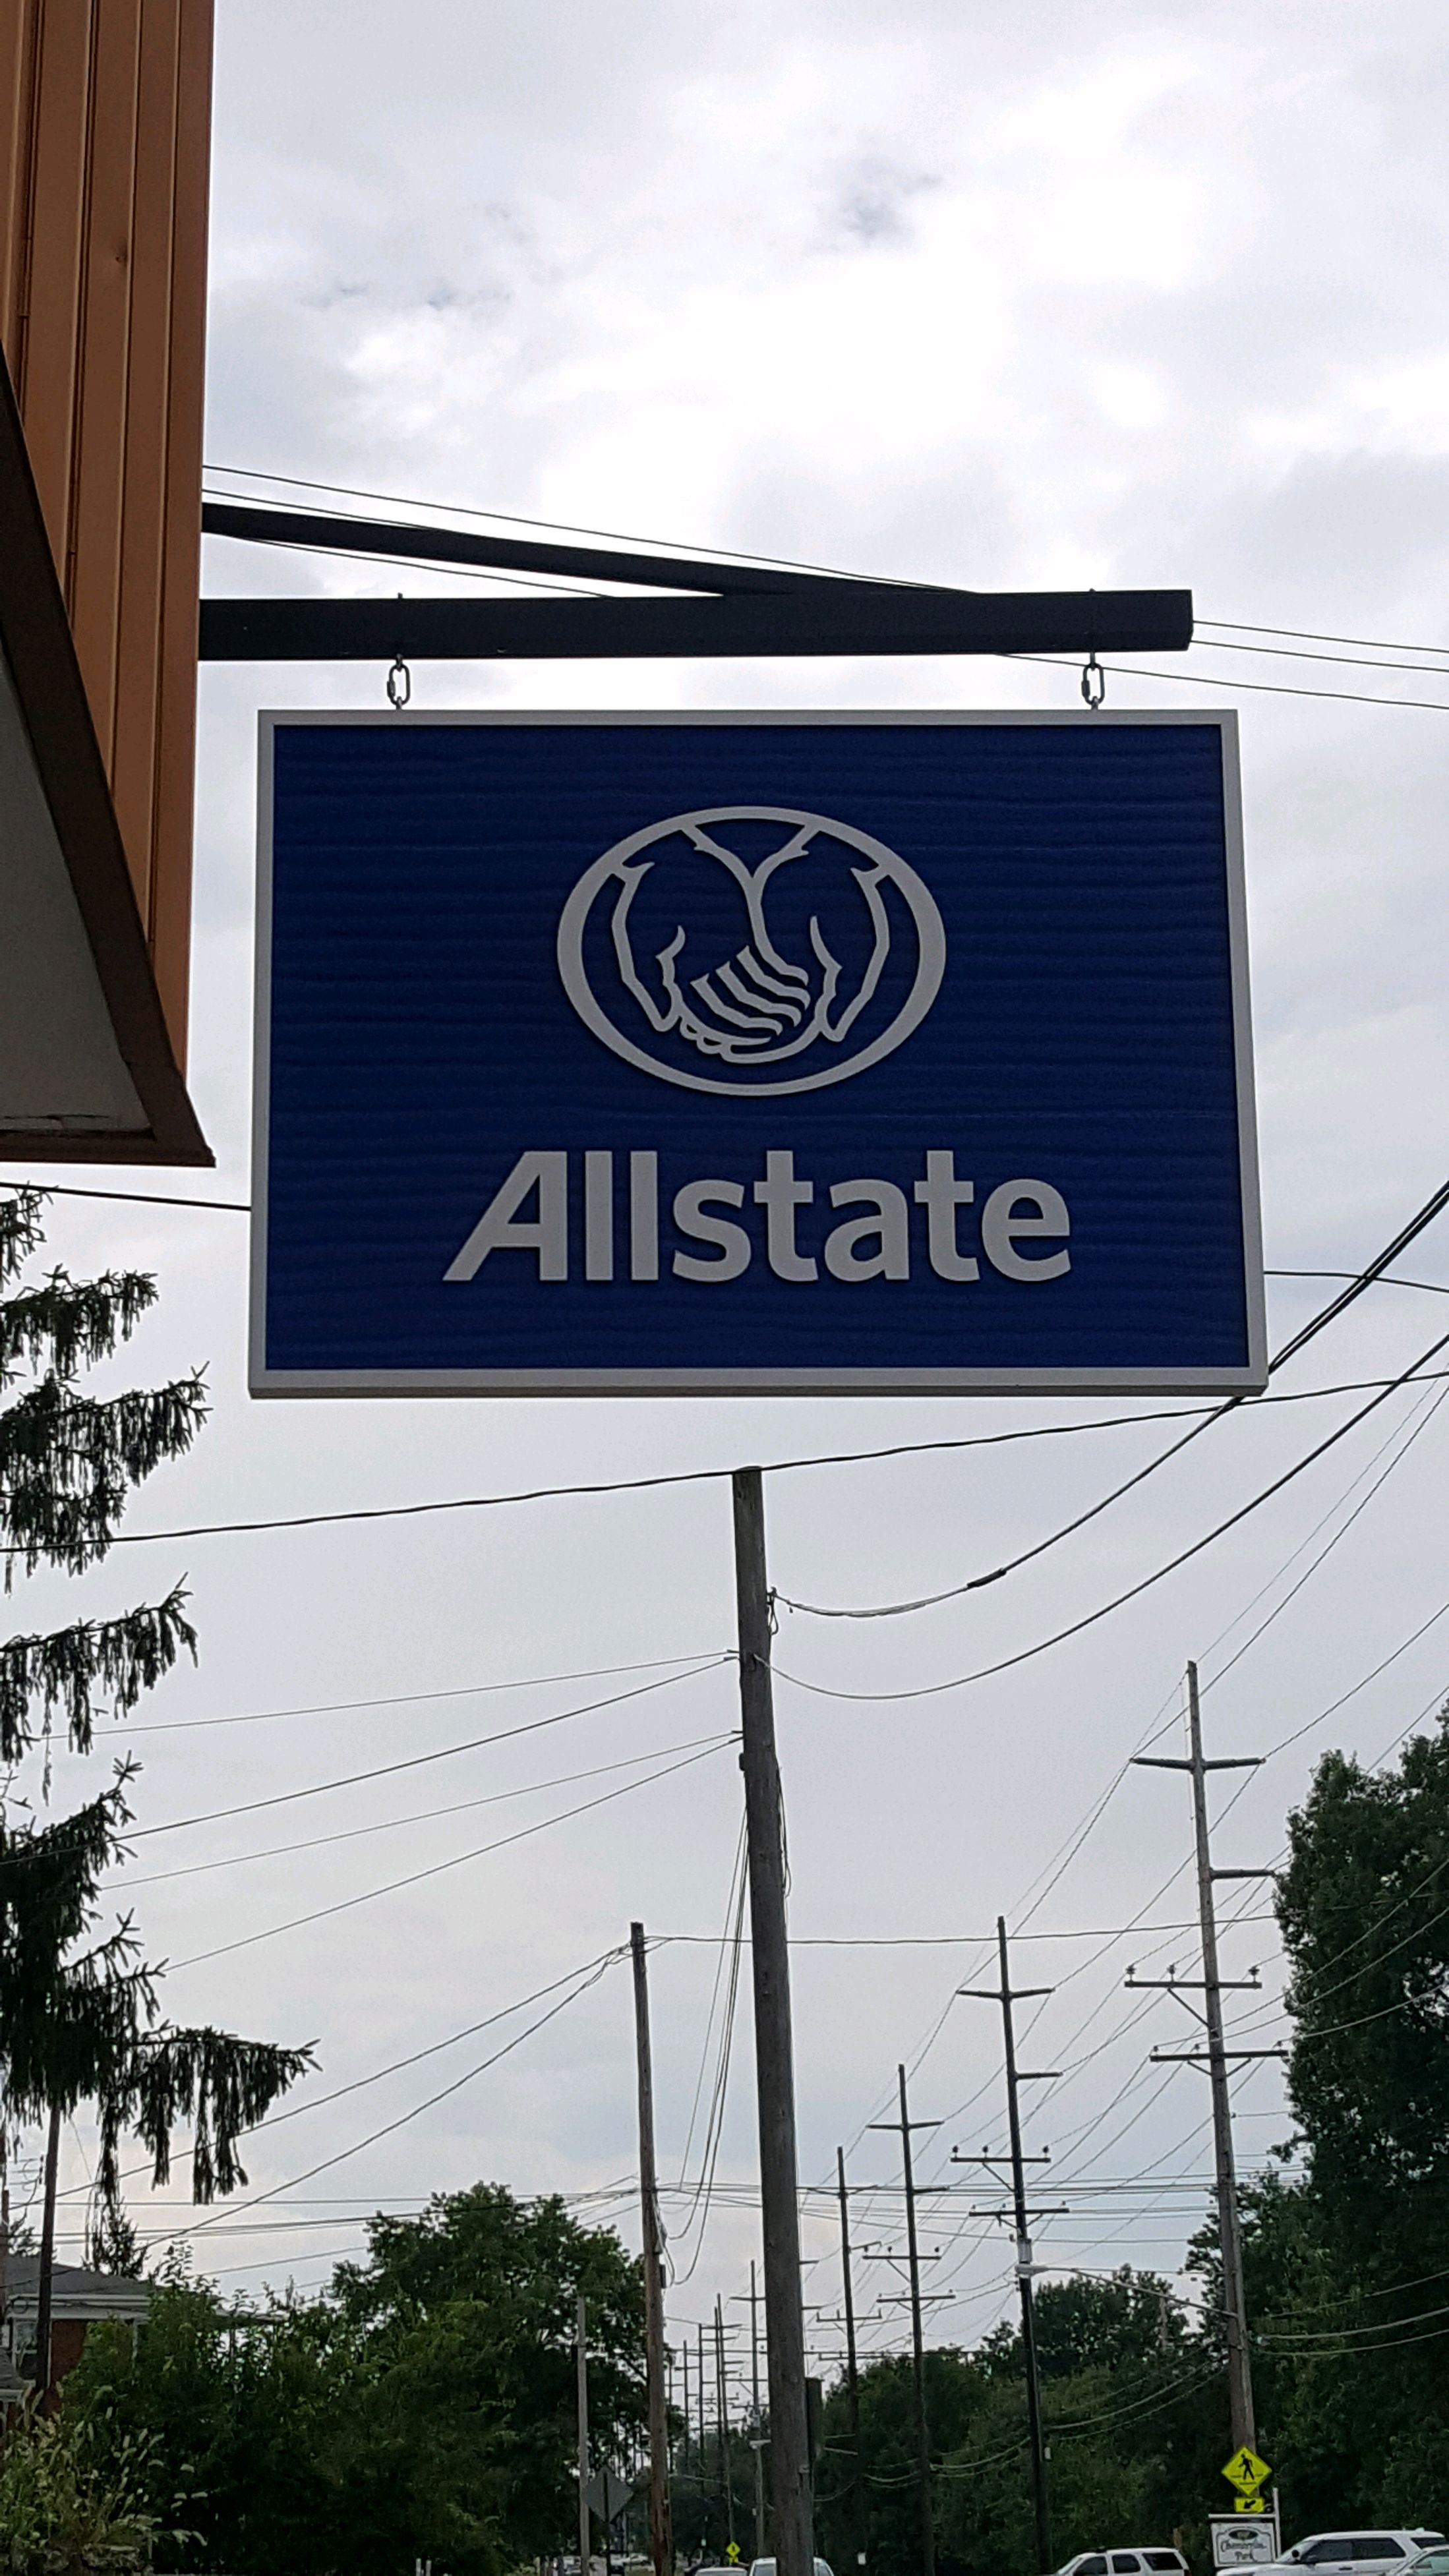 Allstate Insurance Agent Bradley Botkin, Cincinnati Ohio. Dentist In Brighton Co Emory Hospital Billing. Knowledge Management Program. One Page Checkout Shopping Cart. Business Loan Repayment Terms. Paradoxa Blood Thinner Wilmington Nc Dentists. How Much Homeowners Insurance Do I Need. Check My Credit History Self Storage Cerritos. Insurance Accounting Training